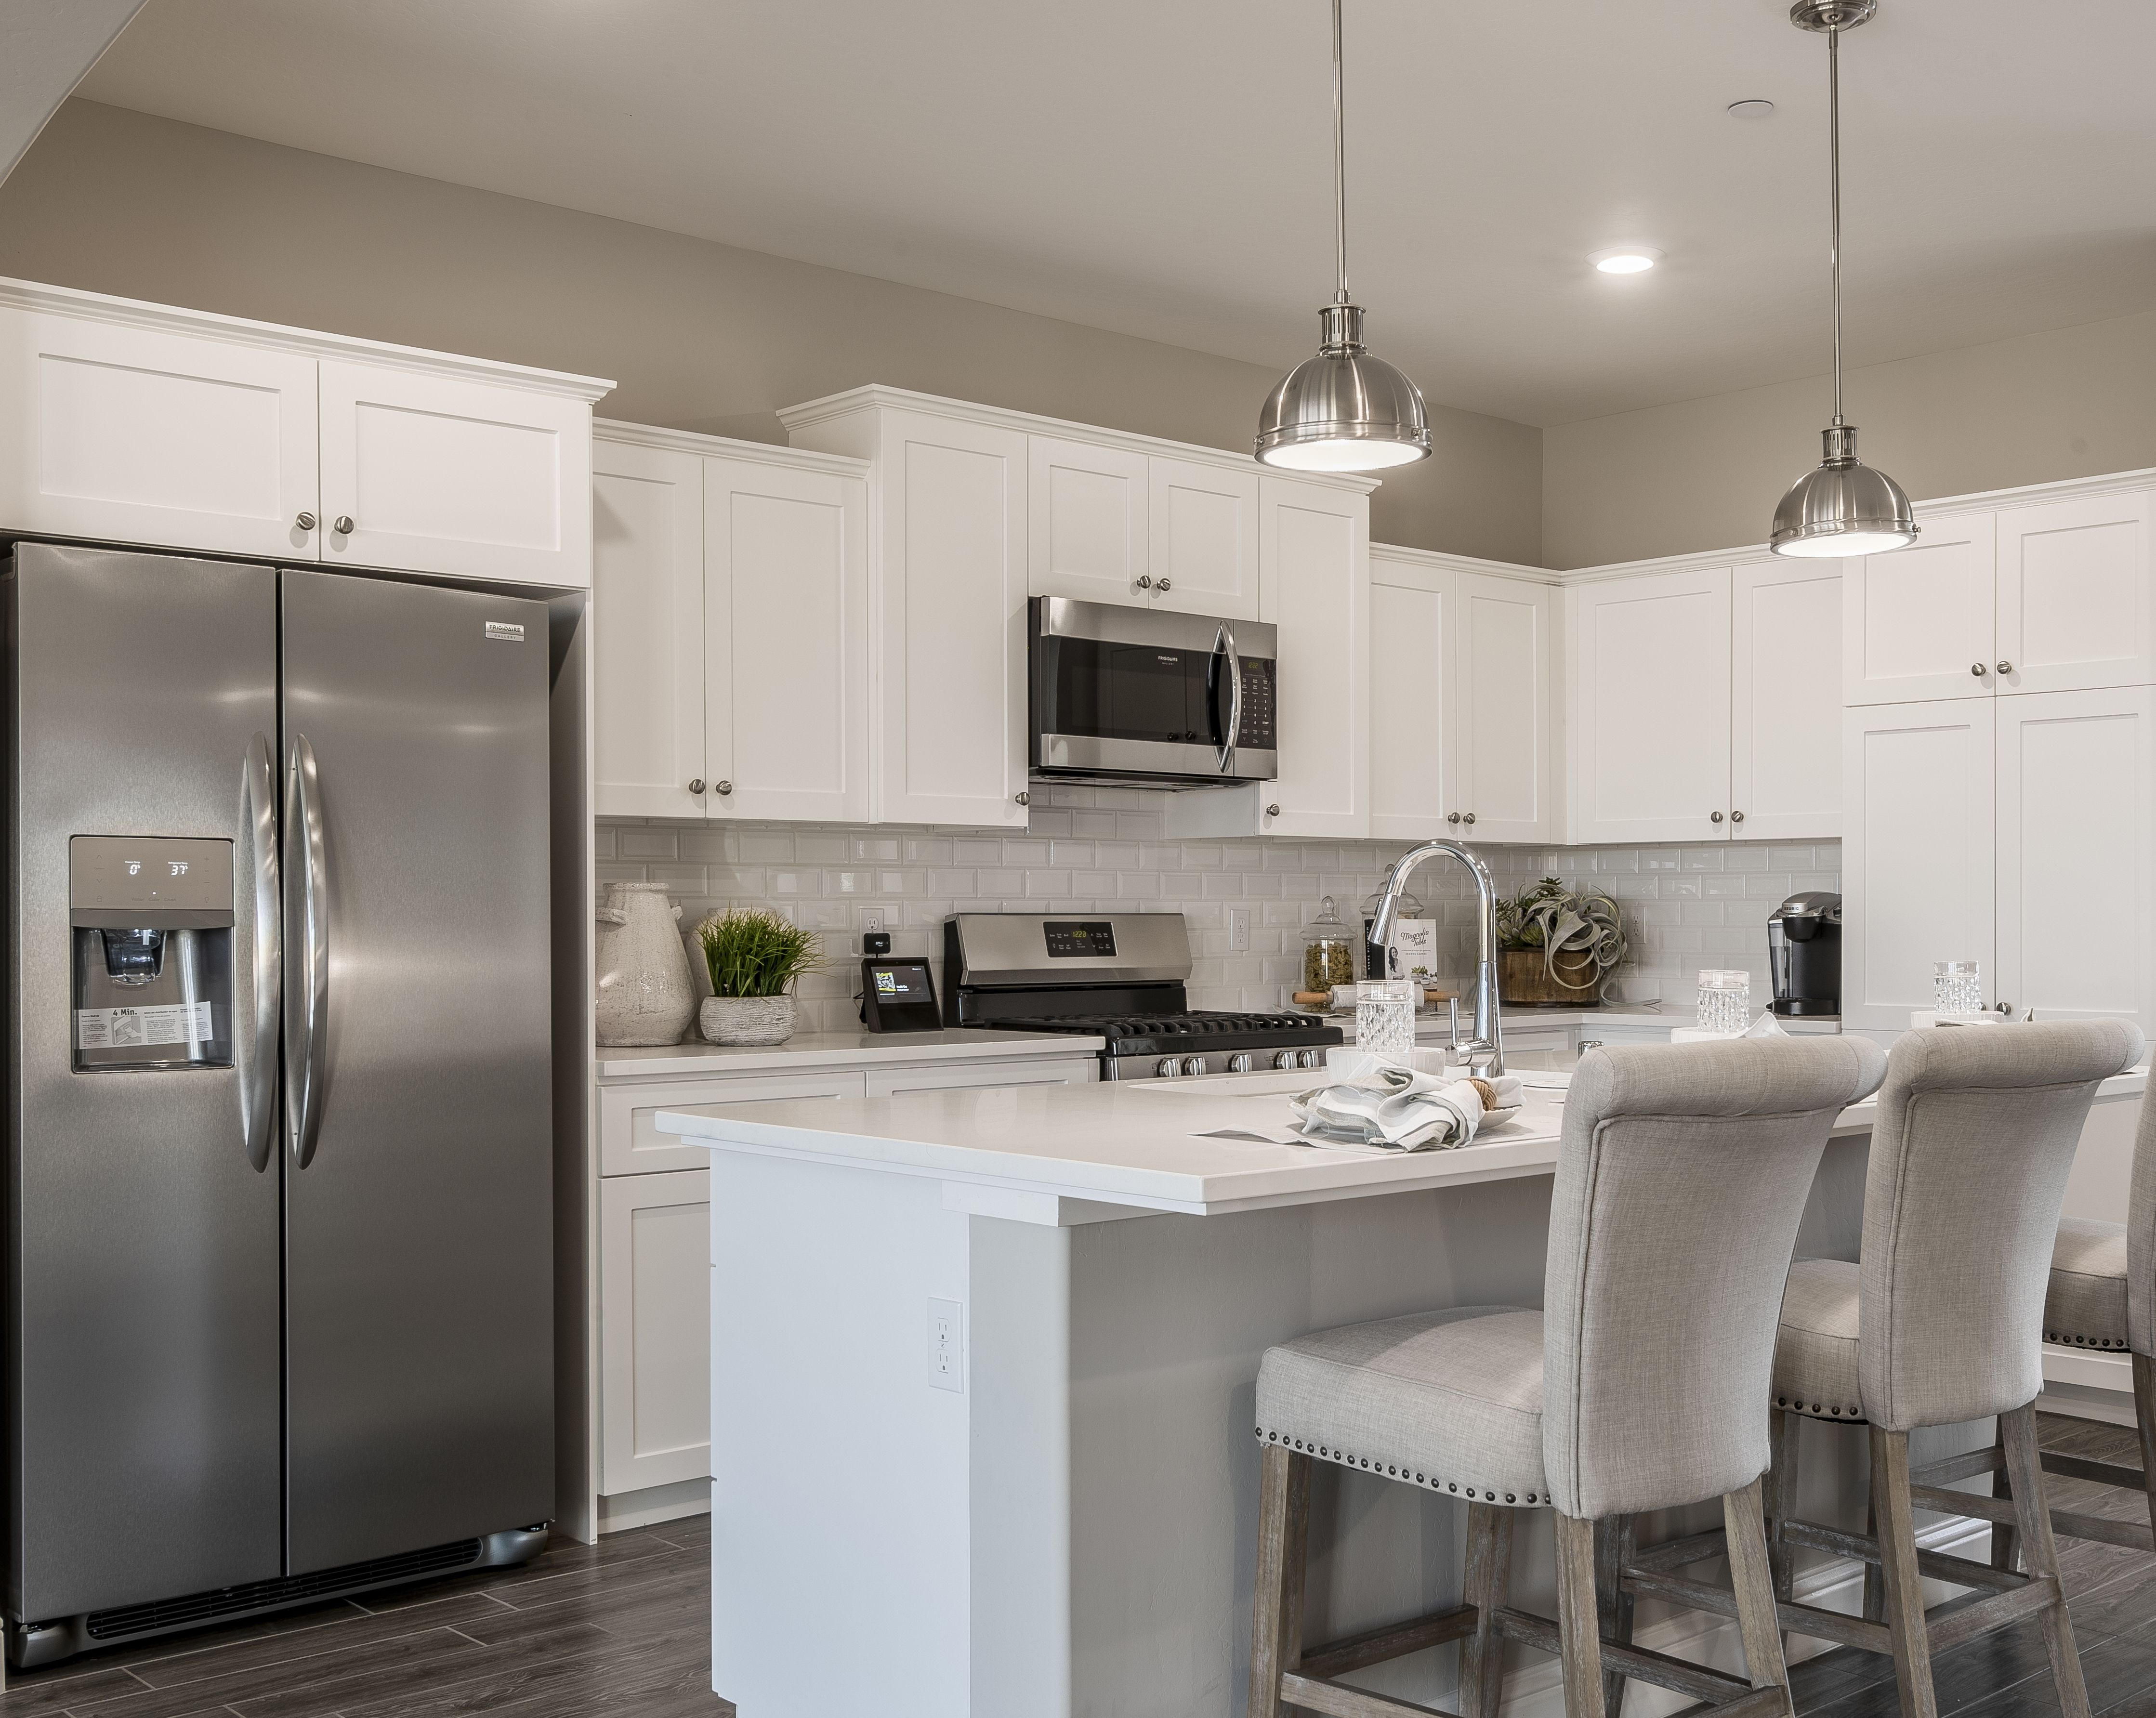 All White Kitchen With Classic Subway Tiles Kitchen Island With Breakfast Bar New Kitchen Cabinets California Homes New Home Construction